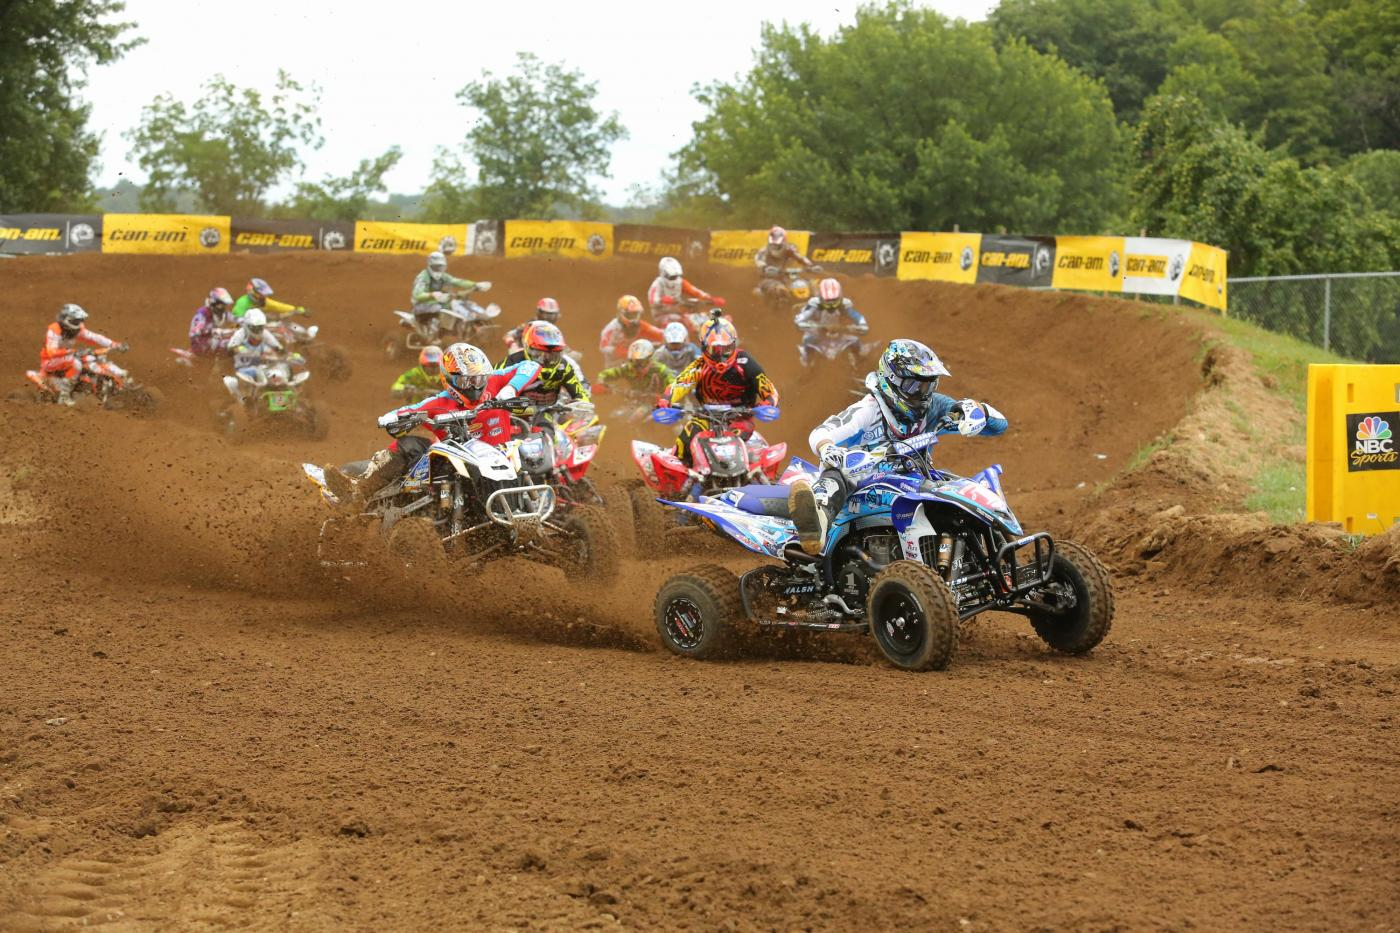 Chad Wienen swept the field at RedBud after going 1-1 for the day.